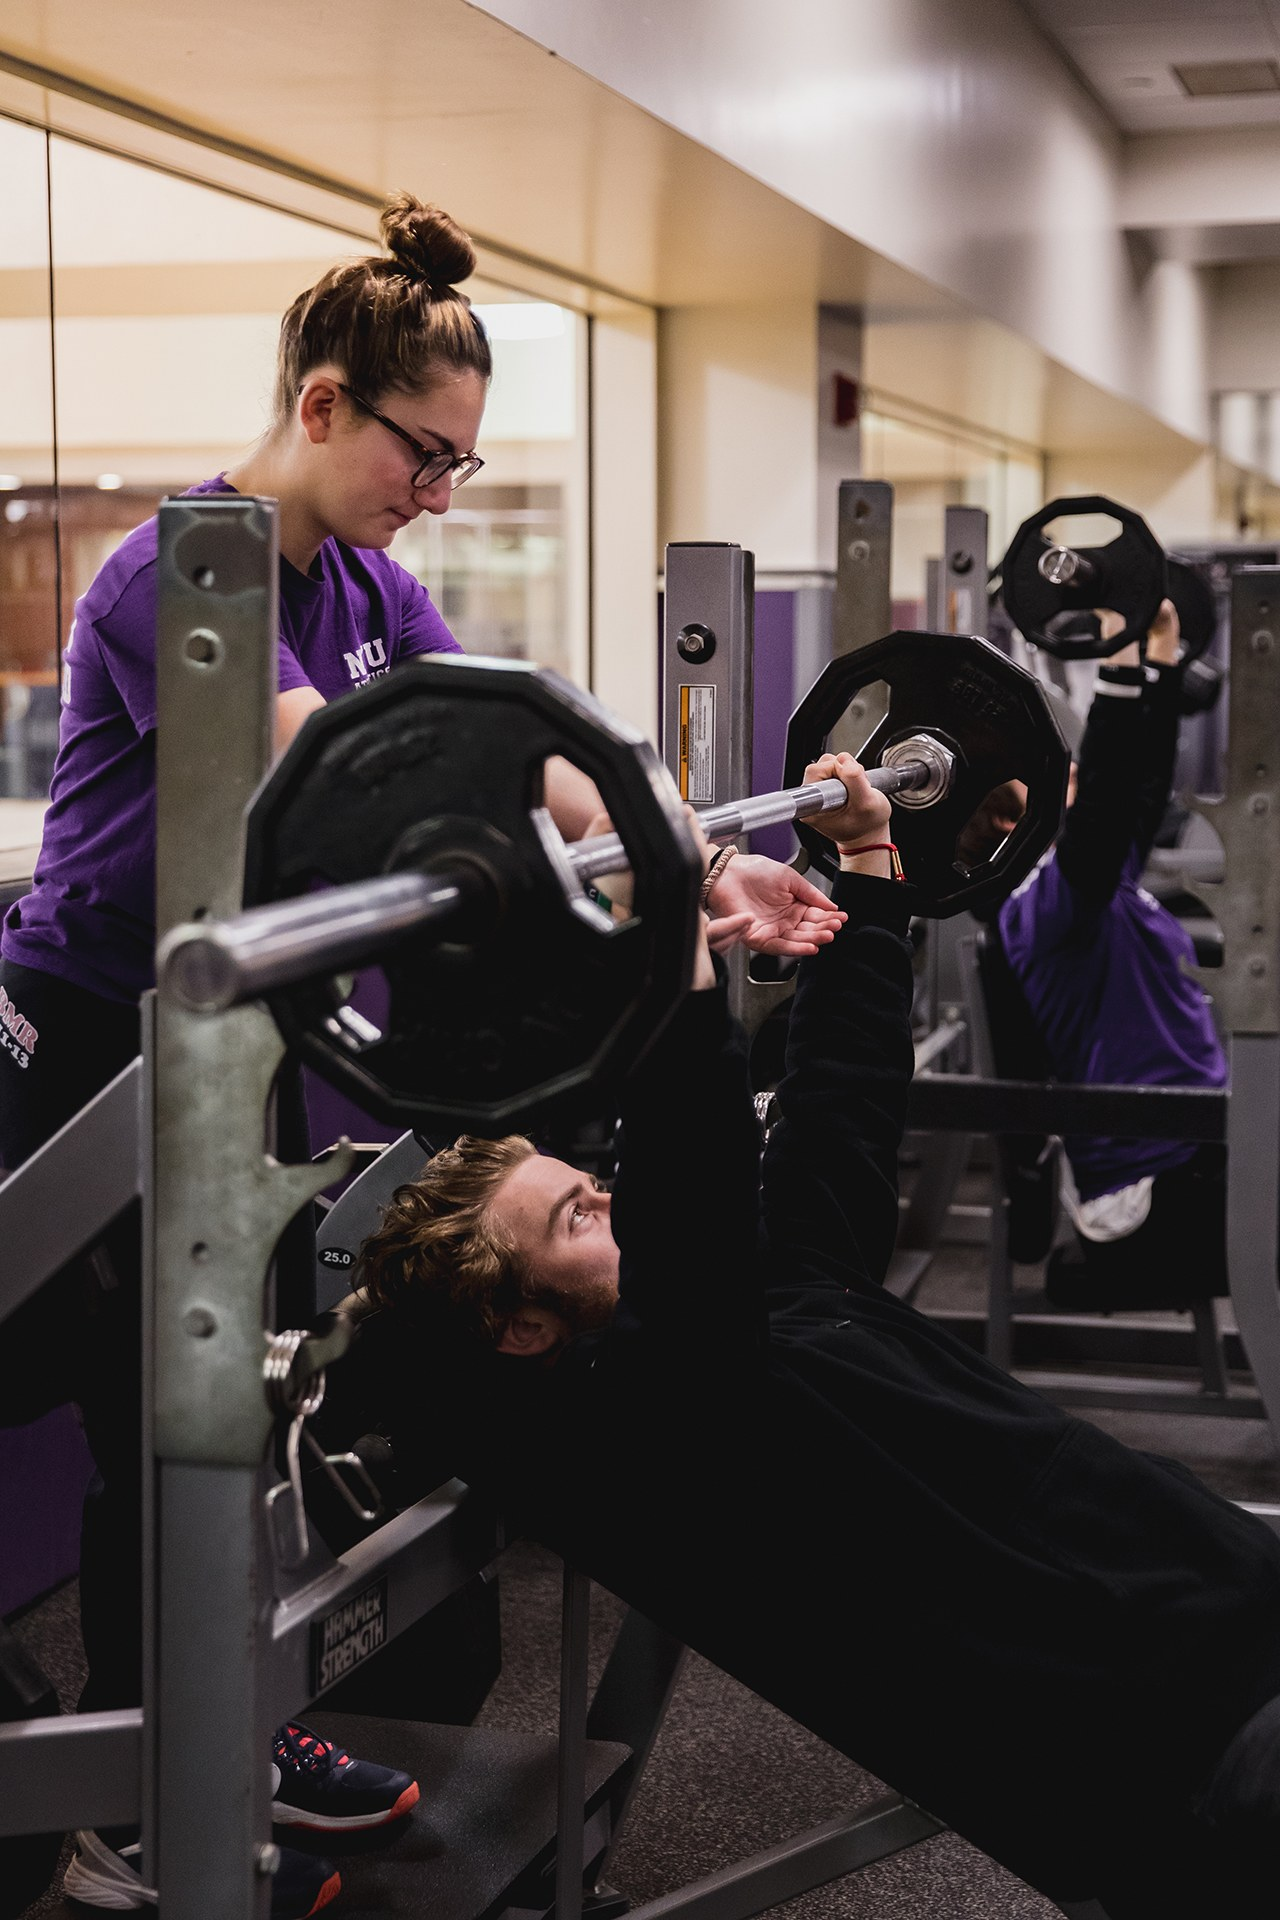 Student lifting large weight on bench while another student spots them.